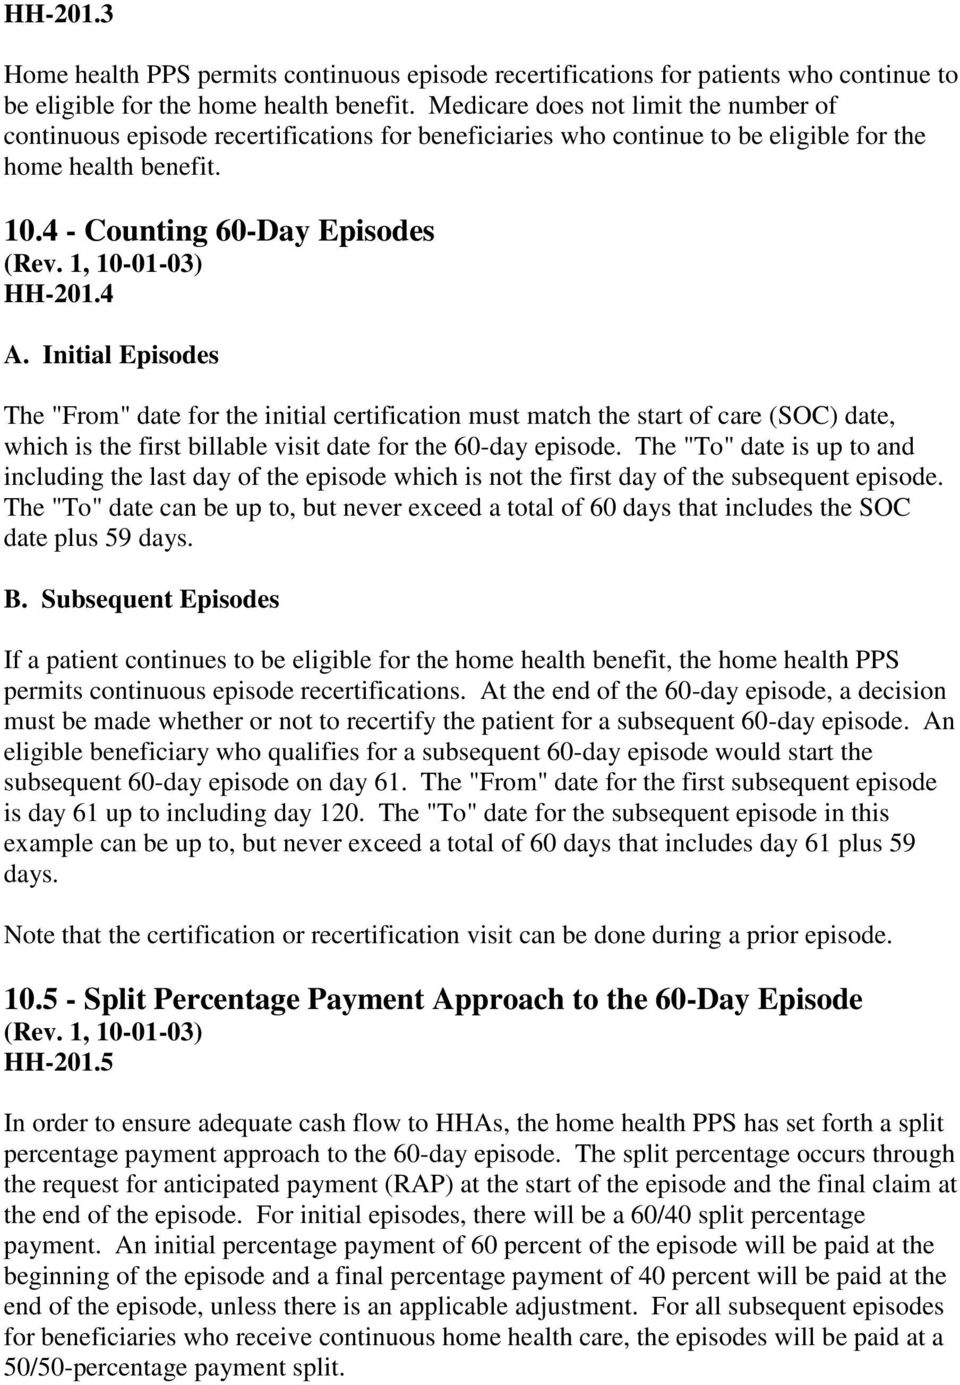 "Initial Episodes The ""From"" date for the initial certification must match the start of care (SOC) date, which is the first billable visit date for the 60-day episode."